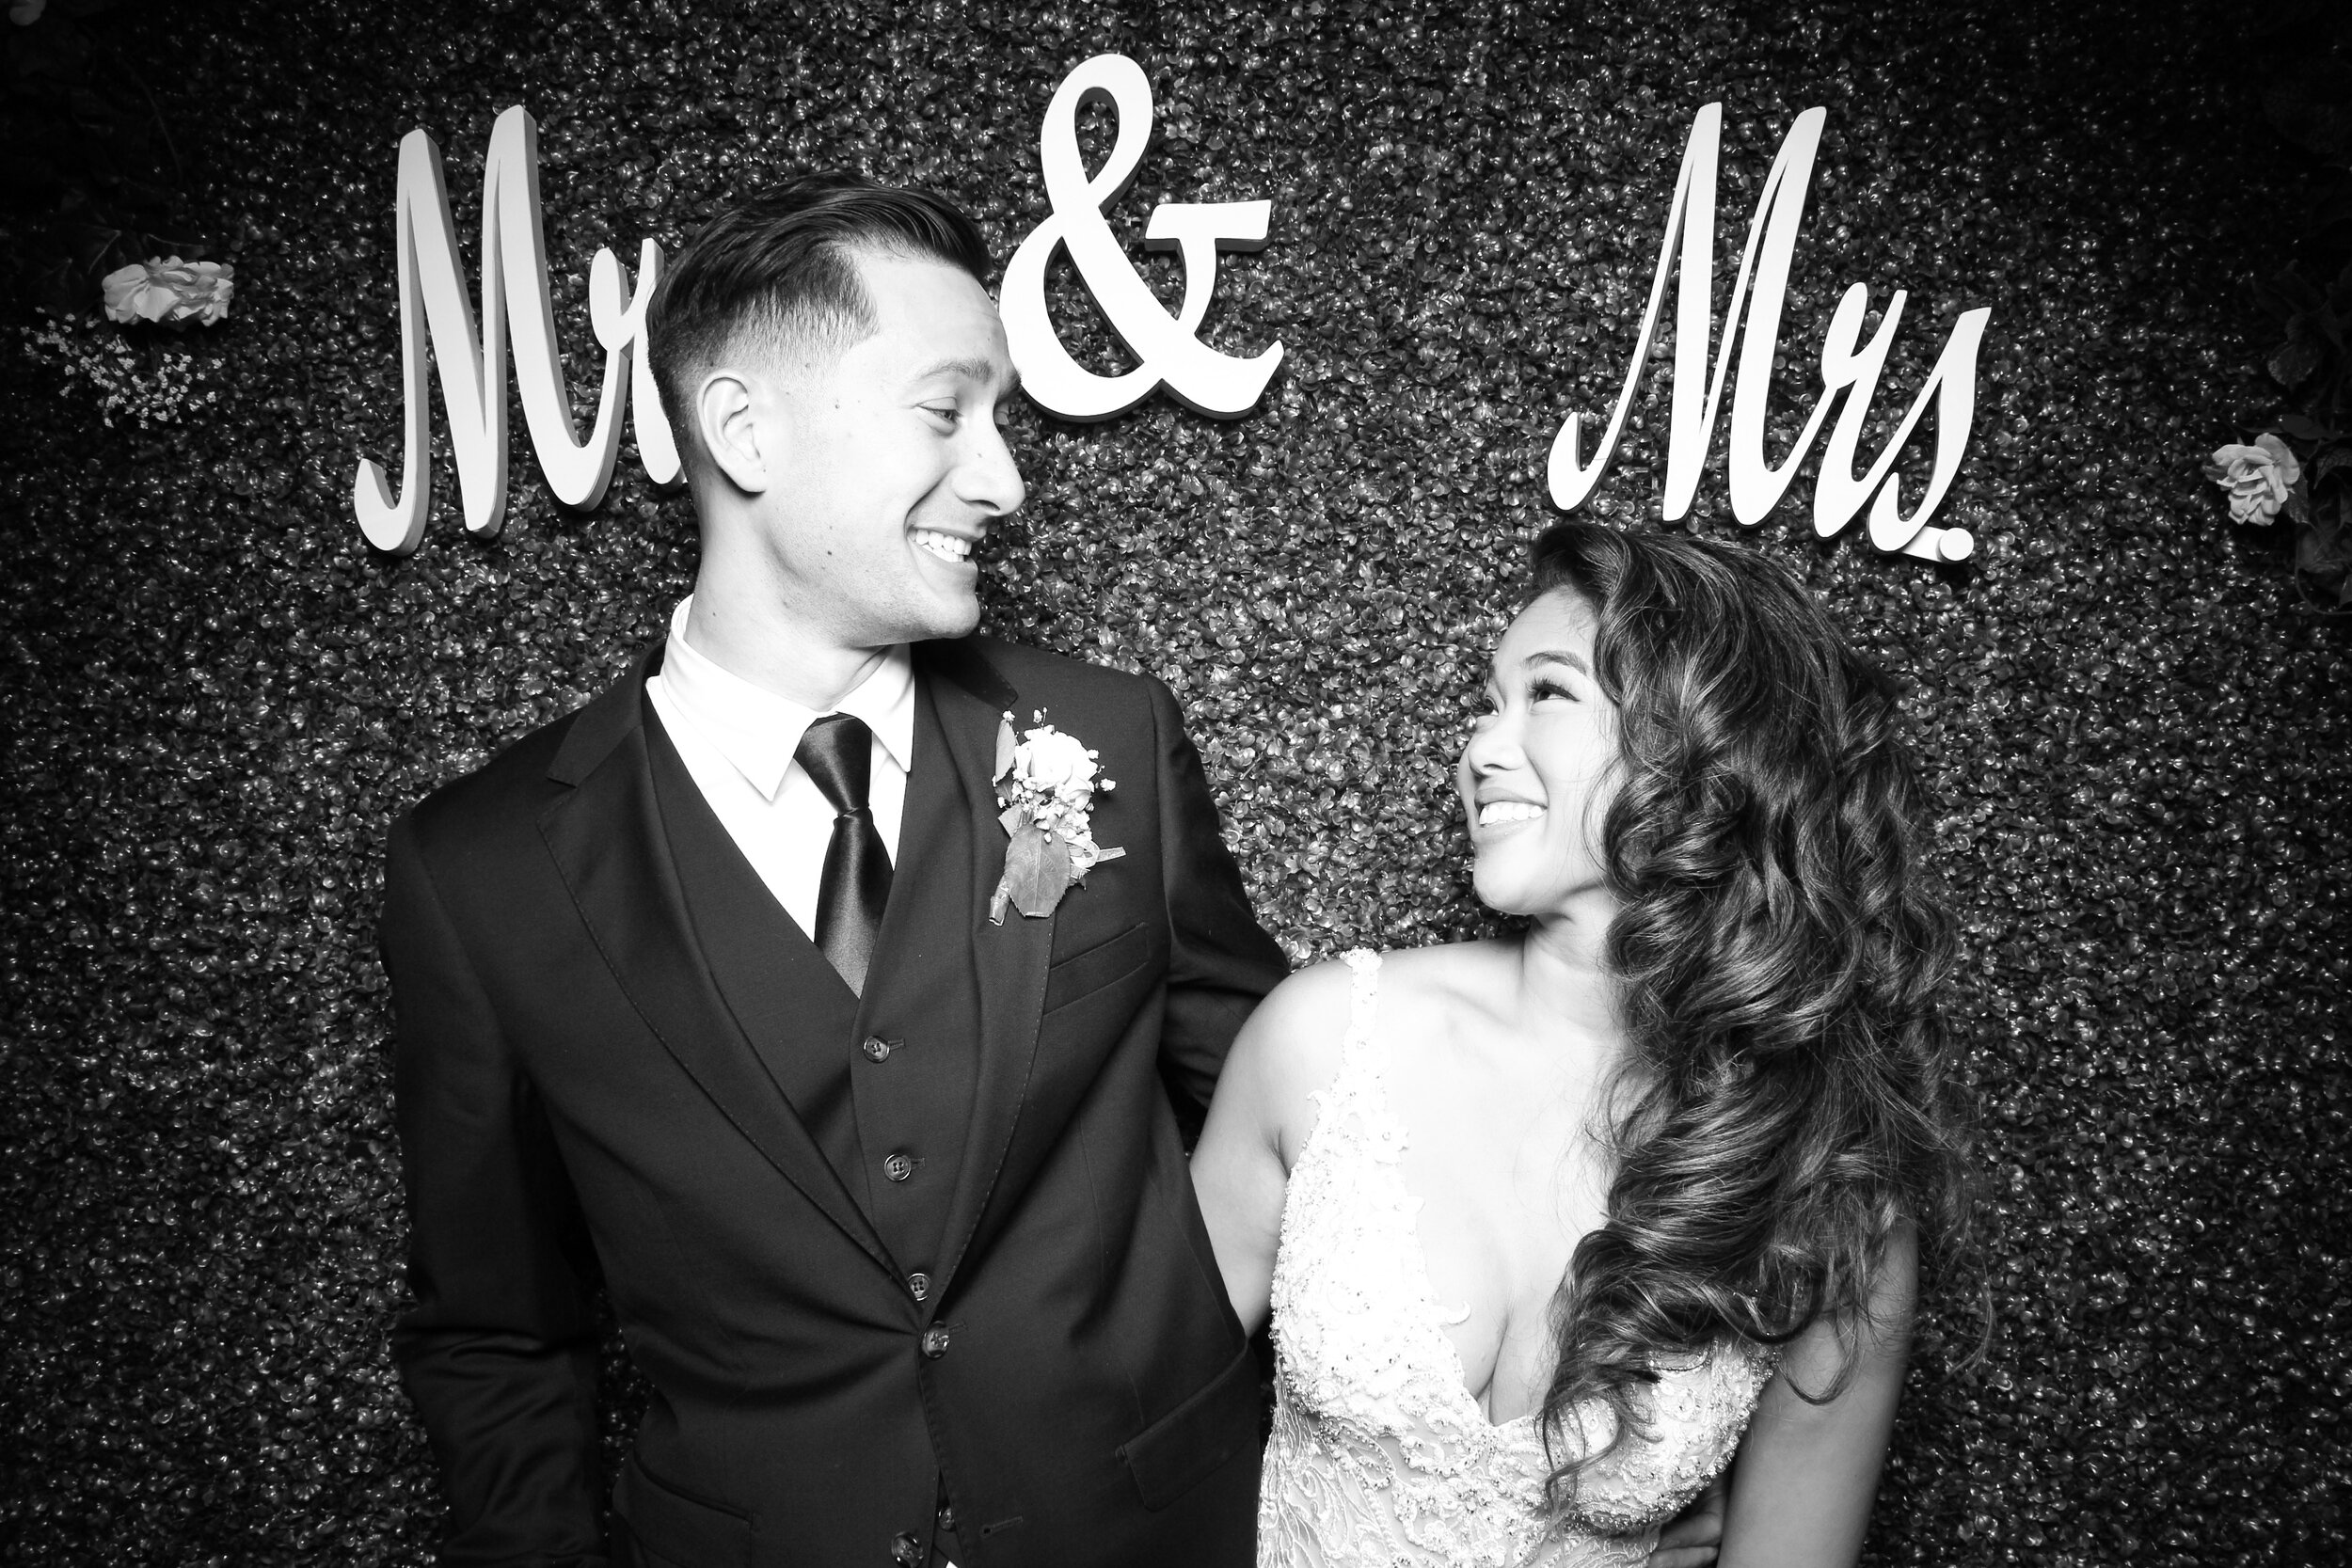 Green_Hedge_Ivy_Wall_Backdrop_Photo_Booth_Rental_Chicago_06.jpg